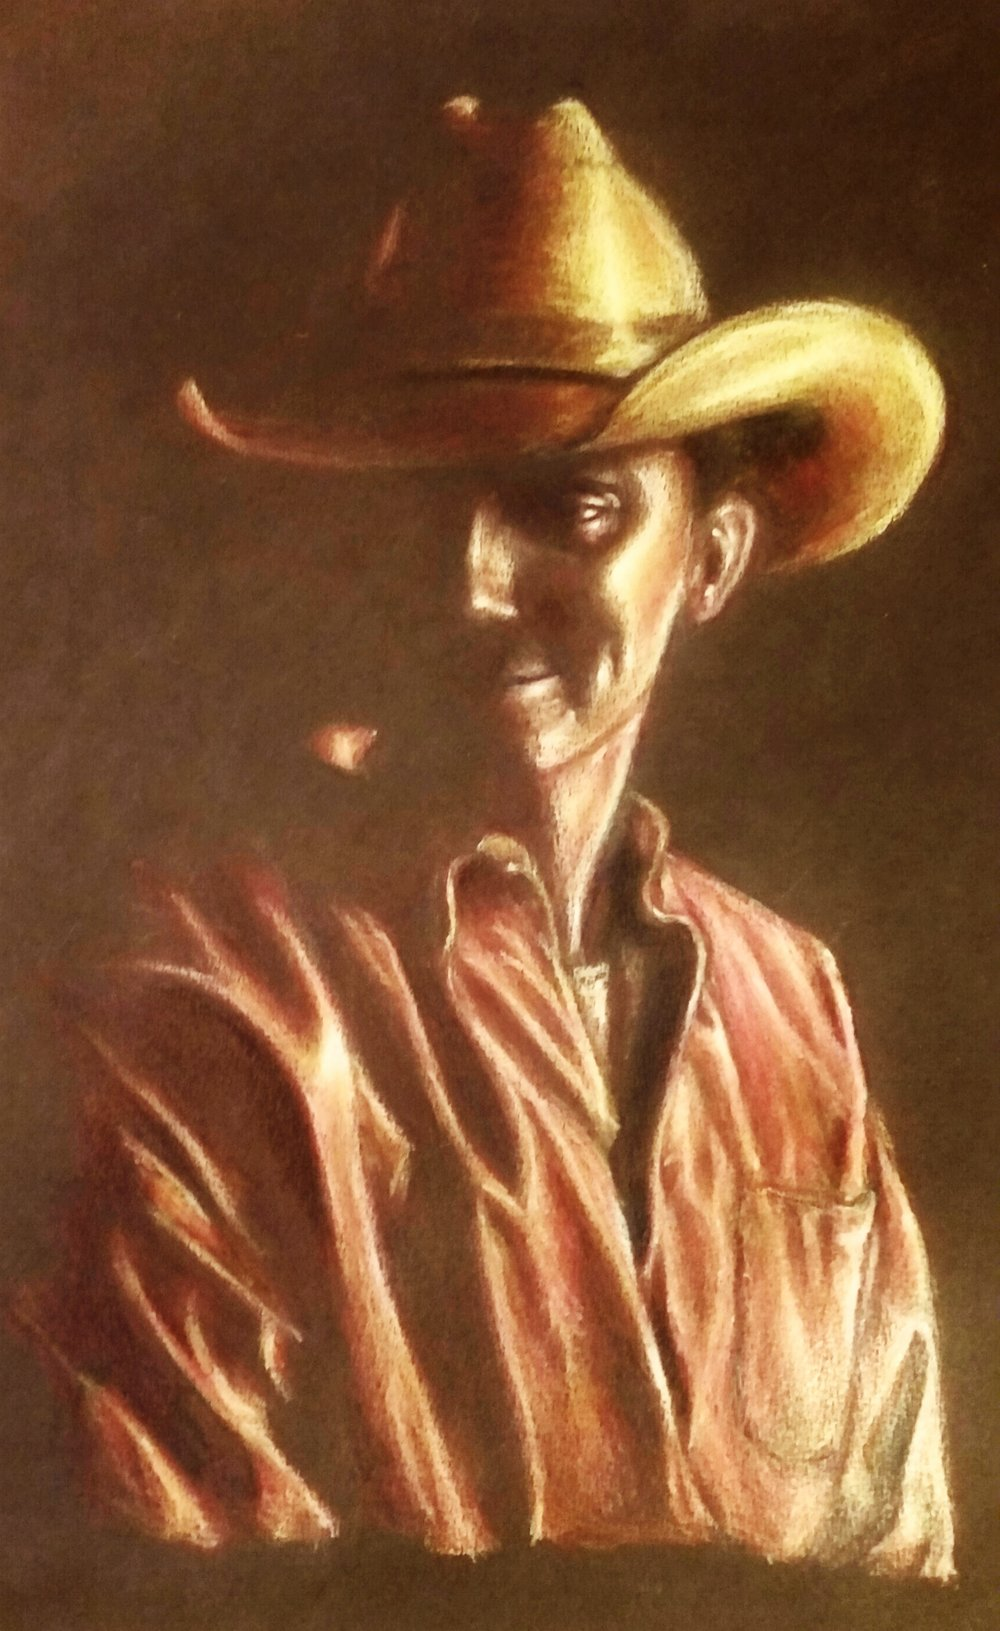 Portrait of a cowboy